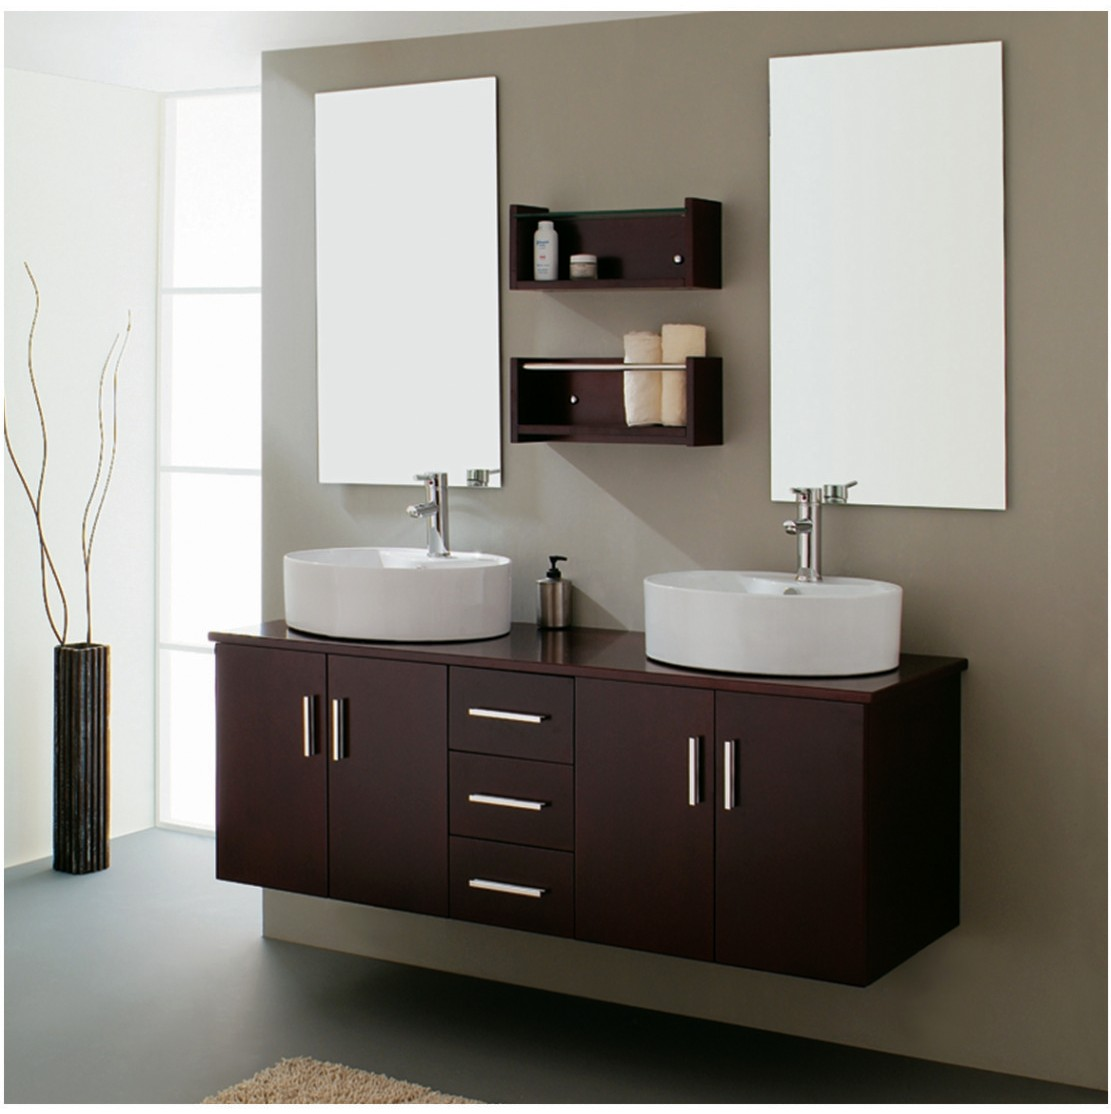 Dual Bathroom Sink : Studio Bathe Modino Double Sink Vanity - contemporary - bathroom ...